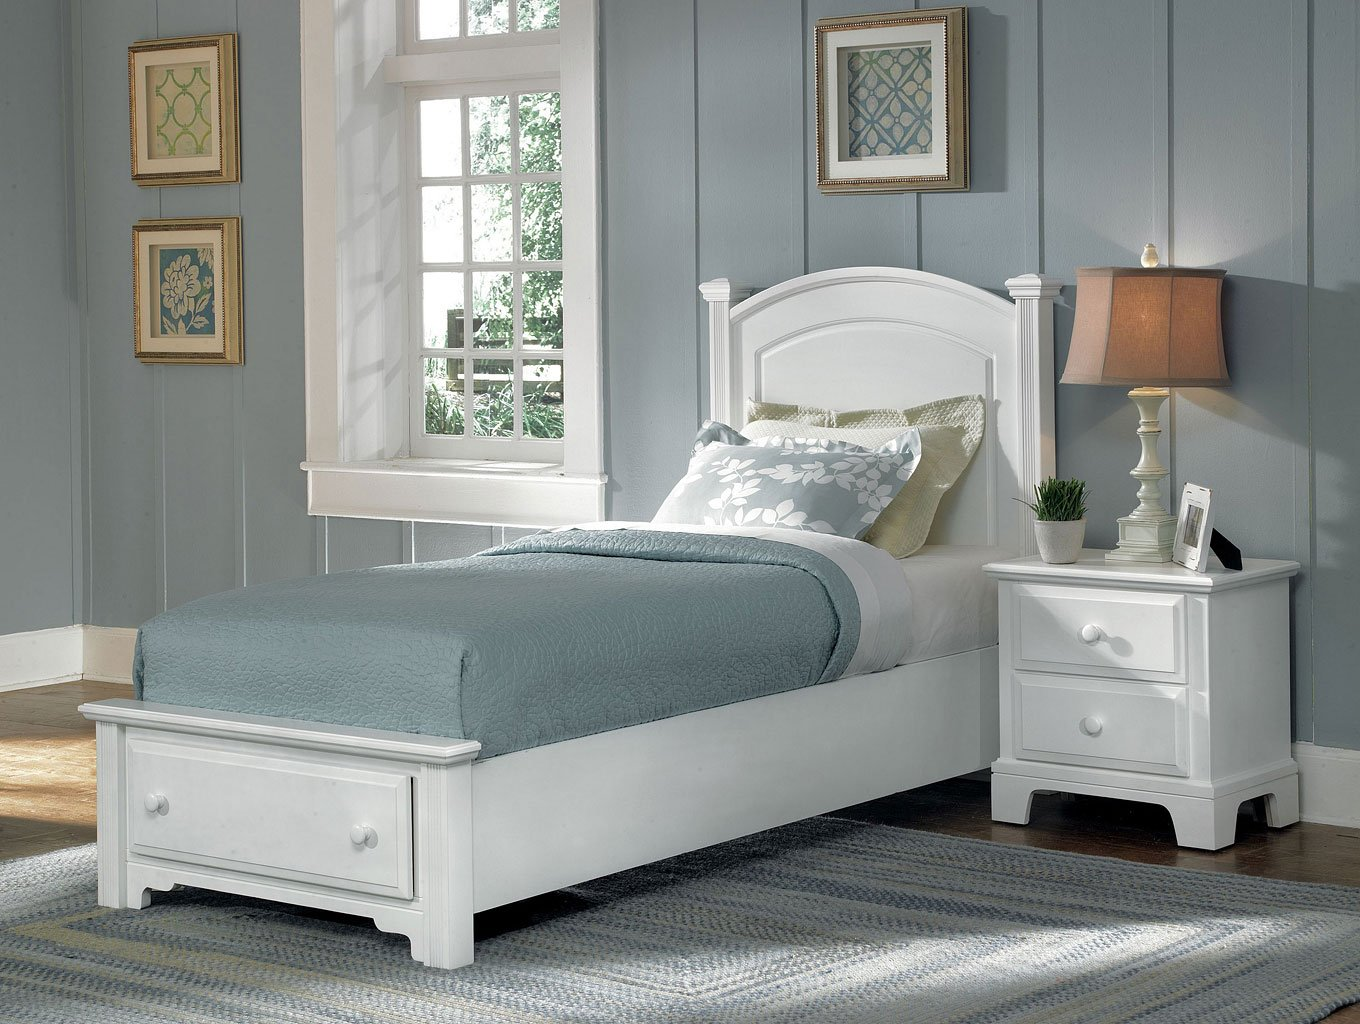 Hamilton franklin youth storage bedroom set snow white - Youth bedroom furniture with storage ...